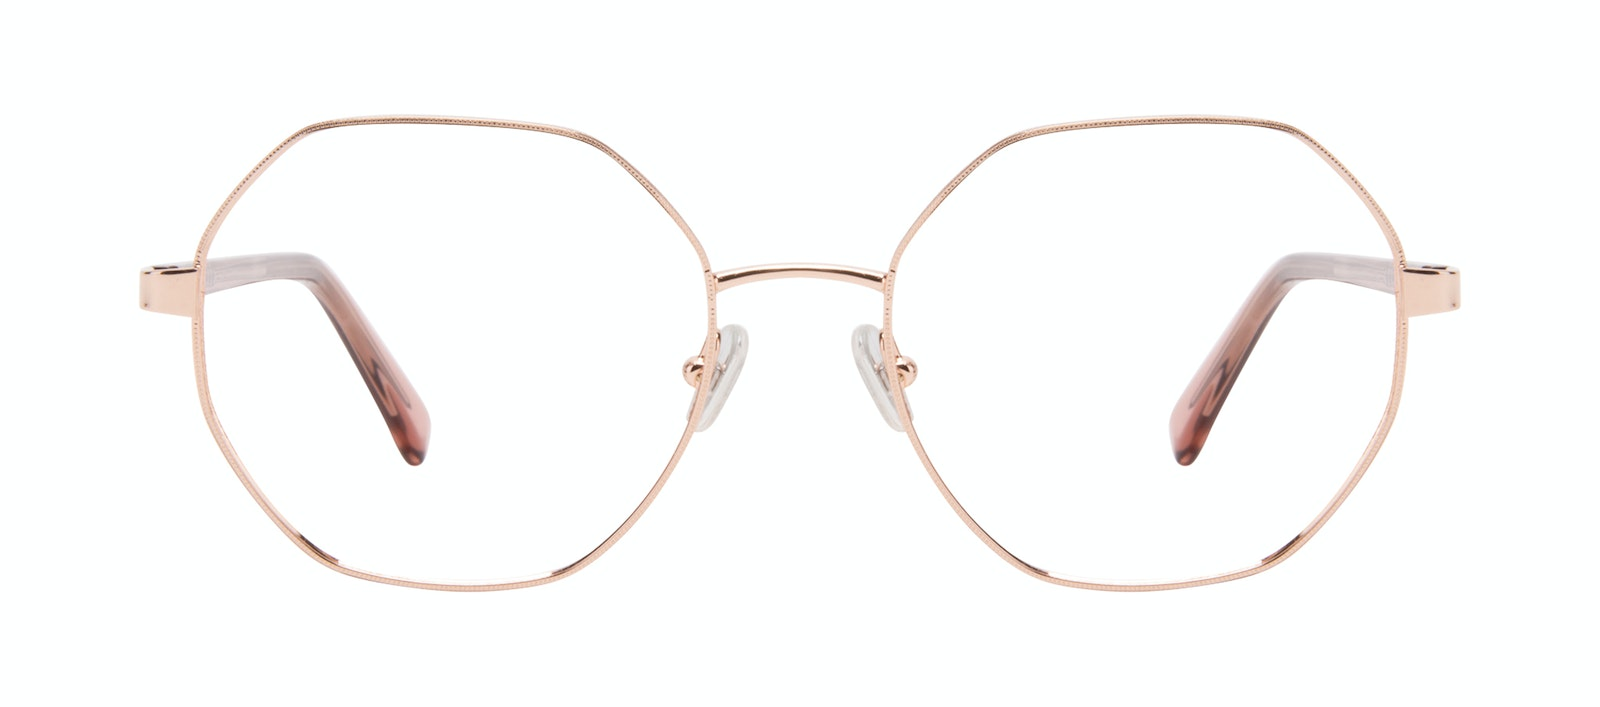 Affordable Fashion Glasses Round Eyeglasses Women Fantasy Rose Front